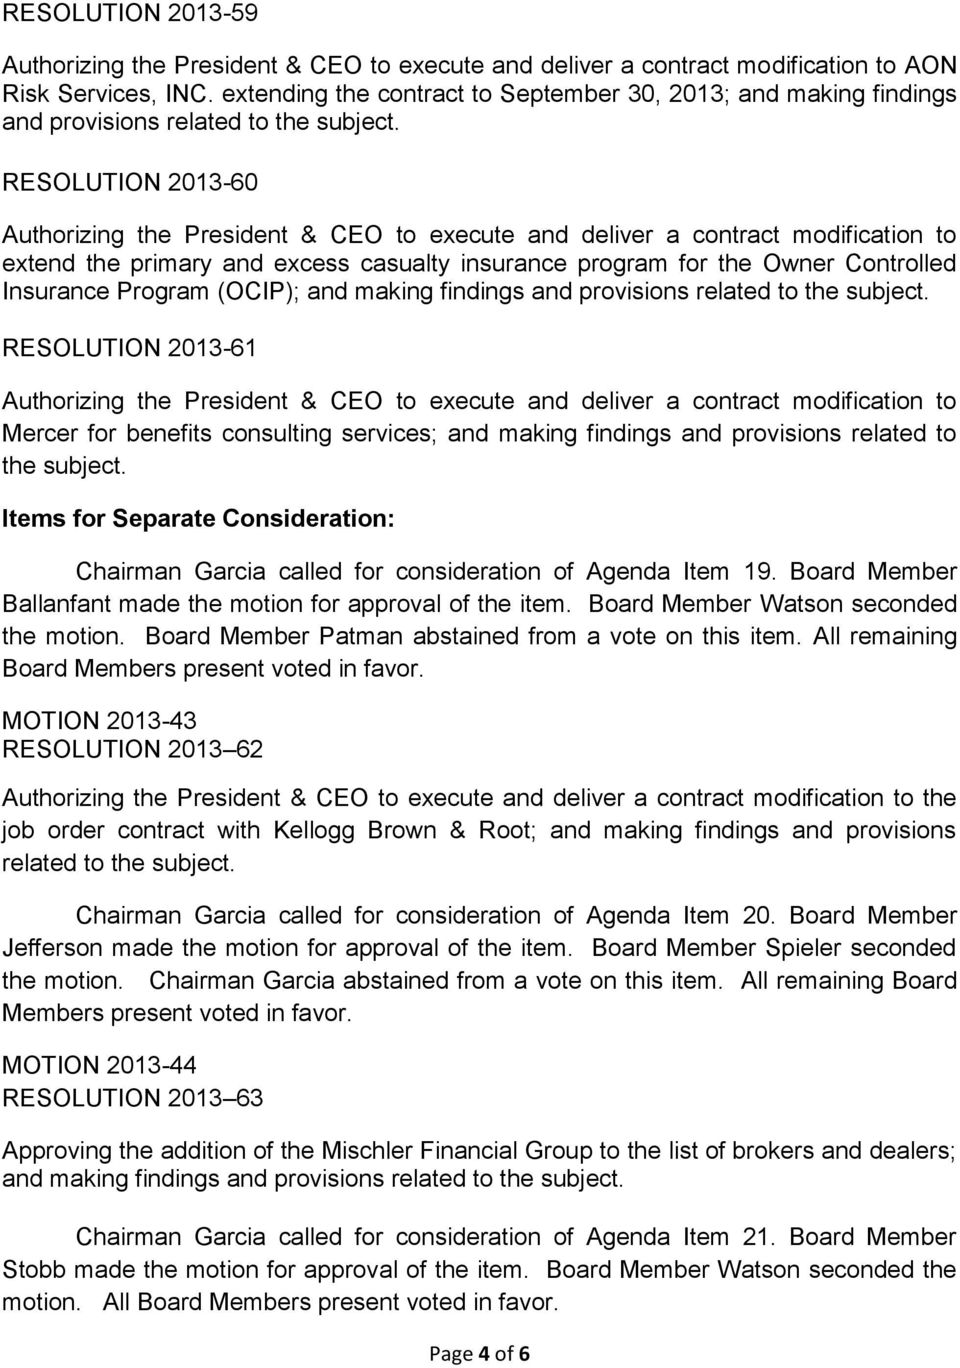 RESOLUTION 2013-60 Authorizing the President & CEO to execute and deliver a contract modification to extend the primary and excess casualty insurance program for the Owner Controlled Insurance